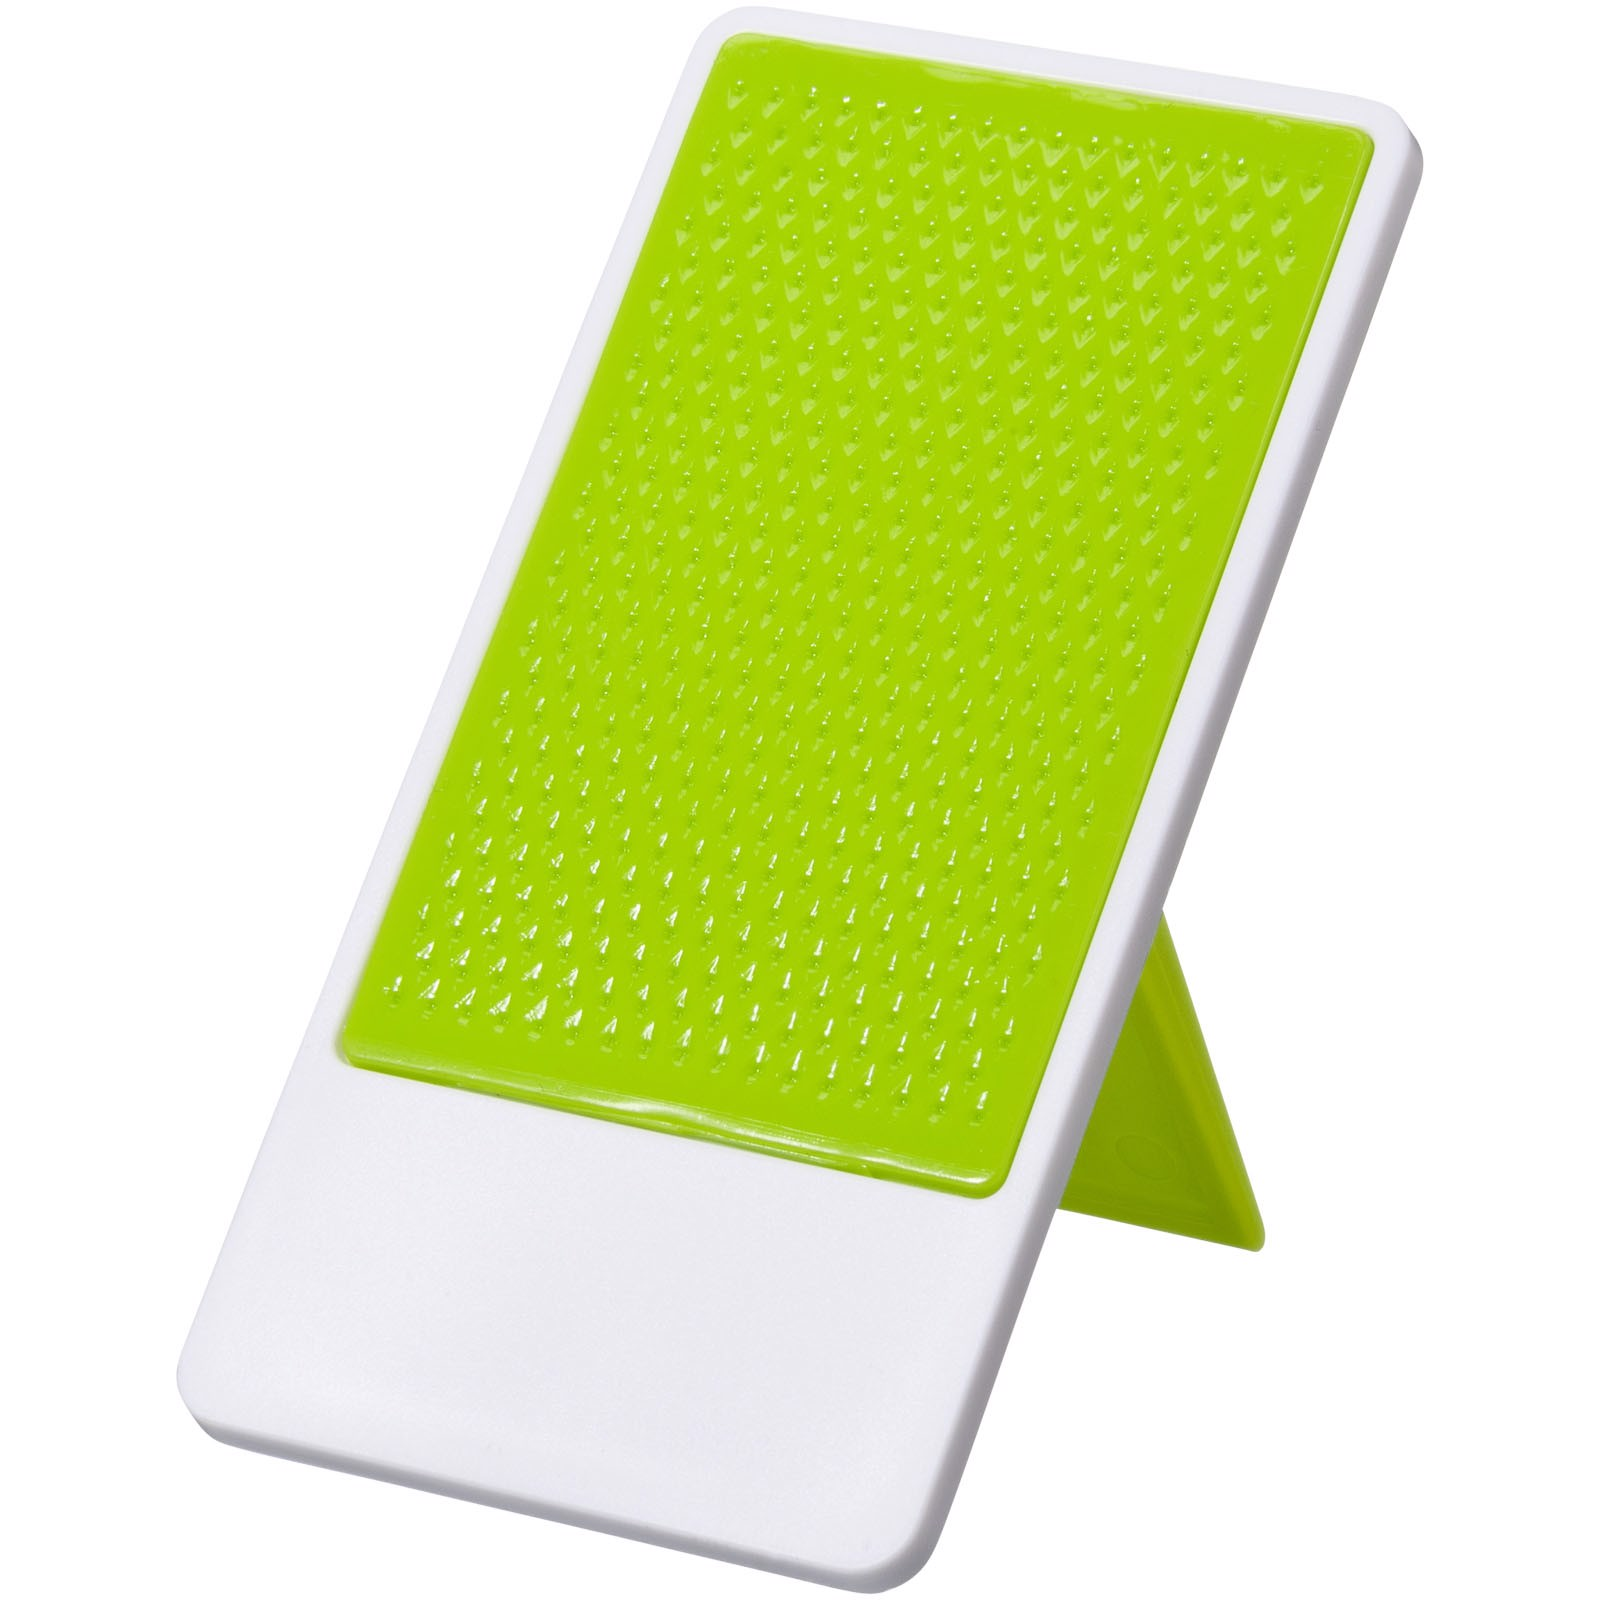 Flip smartphone holder with folding stand - Lime / White